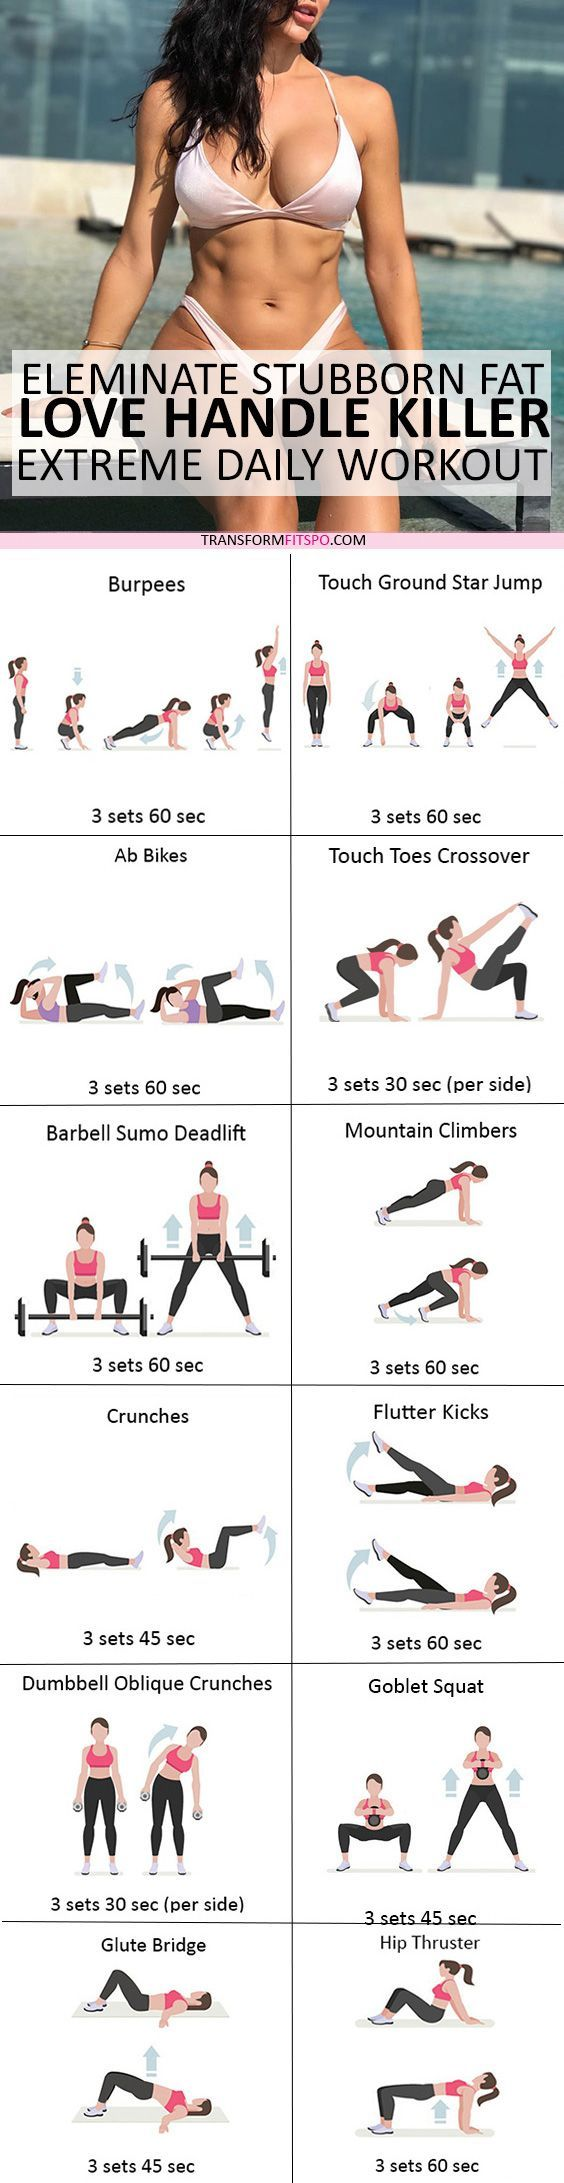 #womensworkout #workout #female fitness Repin and share if this workout killed your love handles! Click the pin for the full workout.